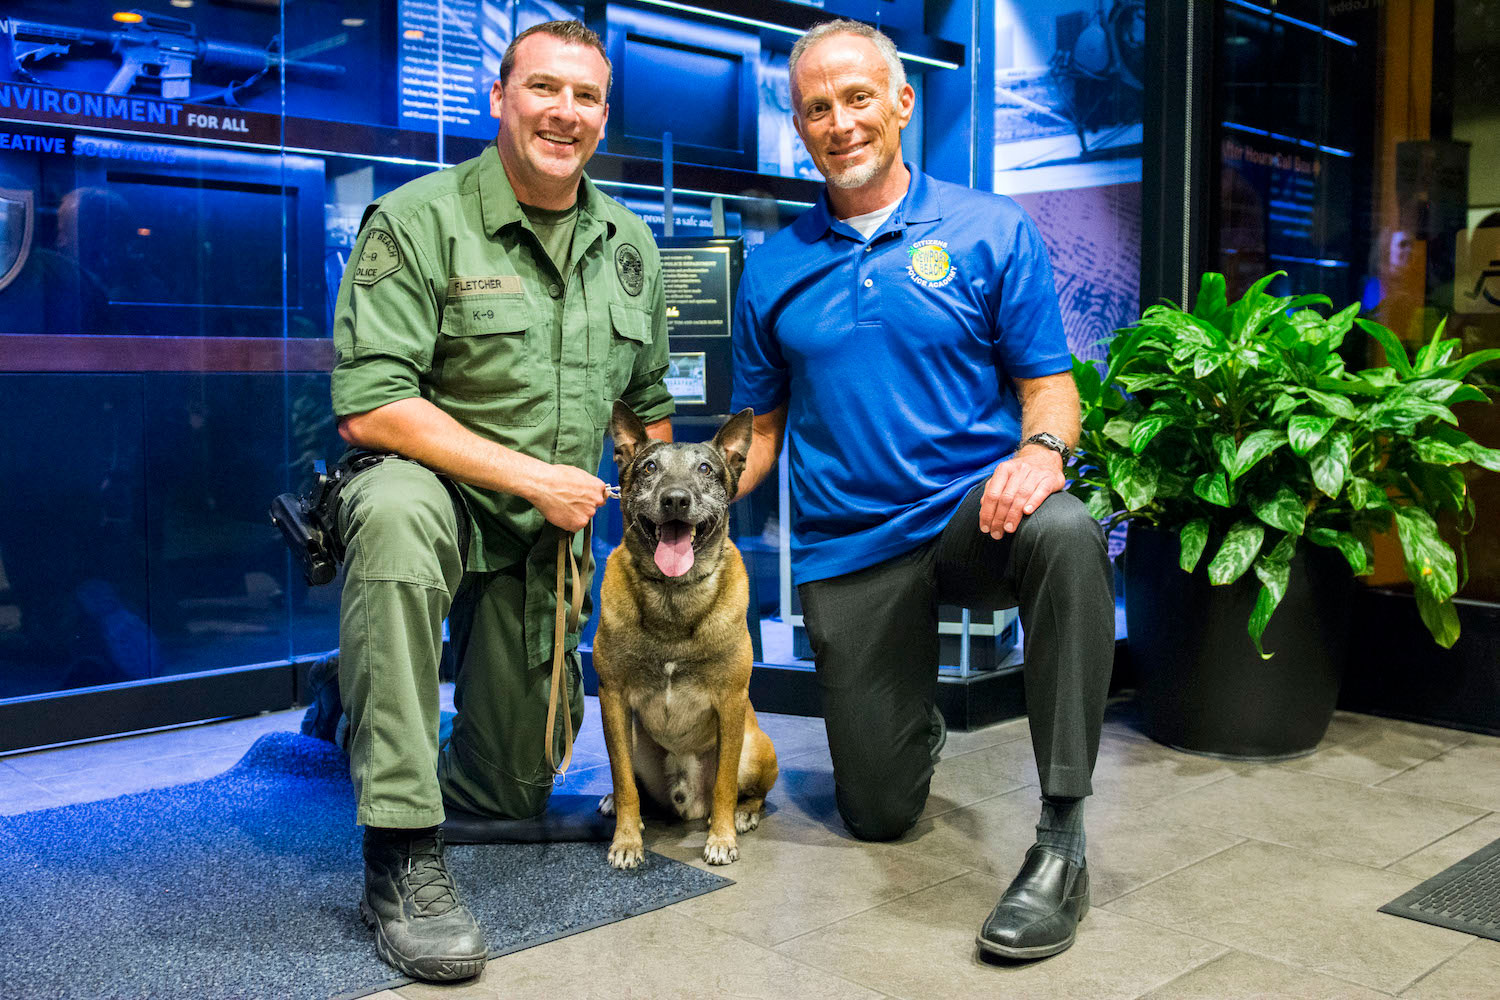 NBPD presents guys with canine